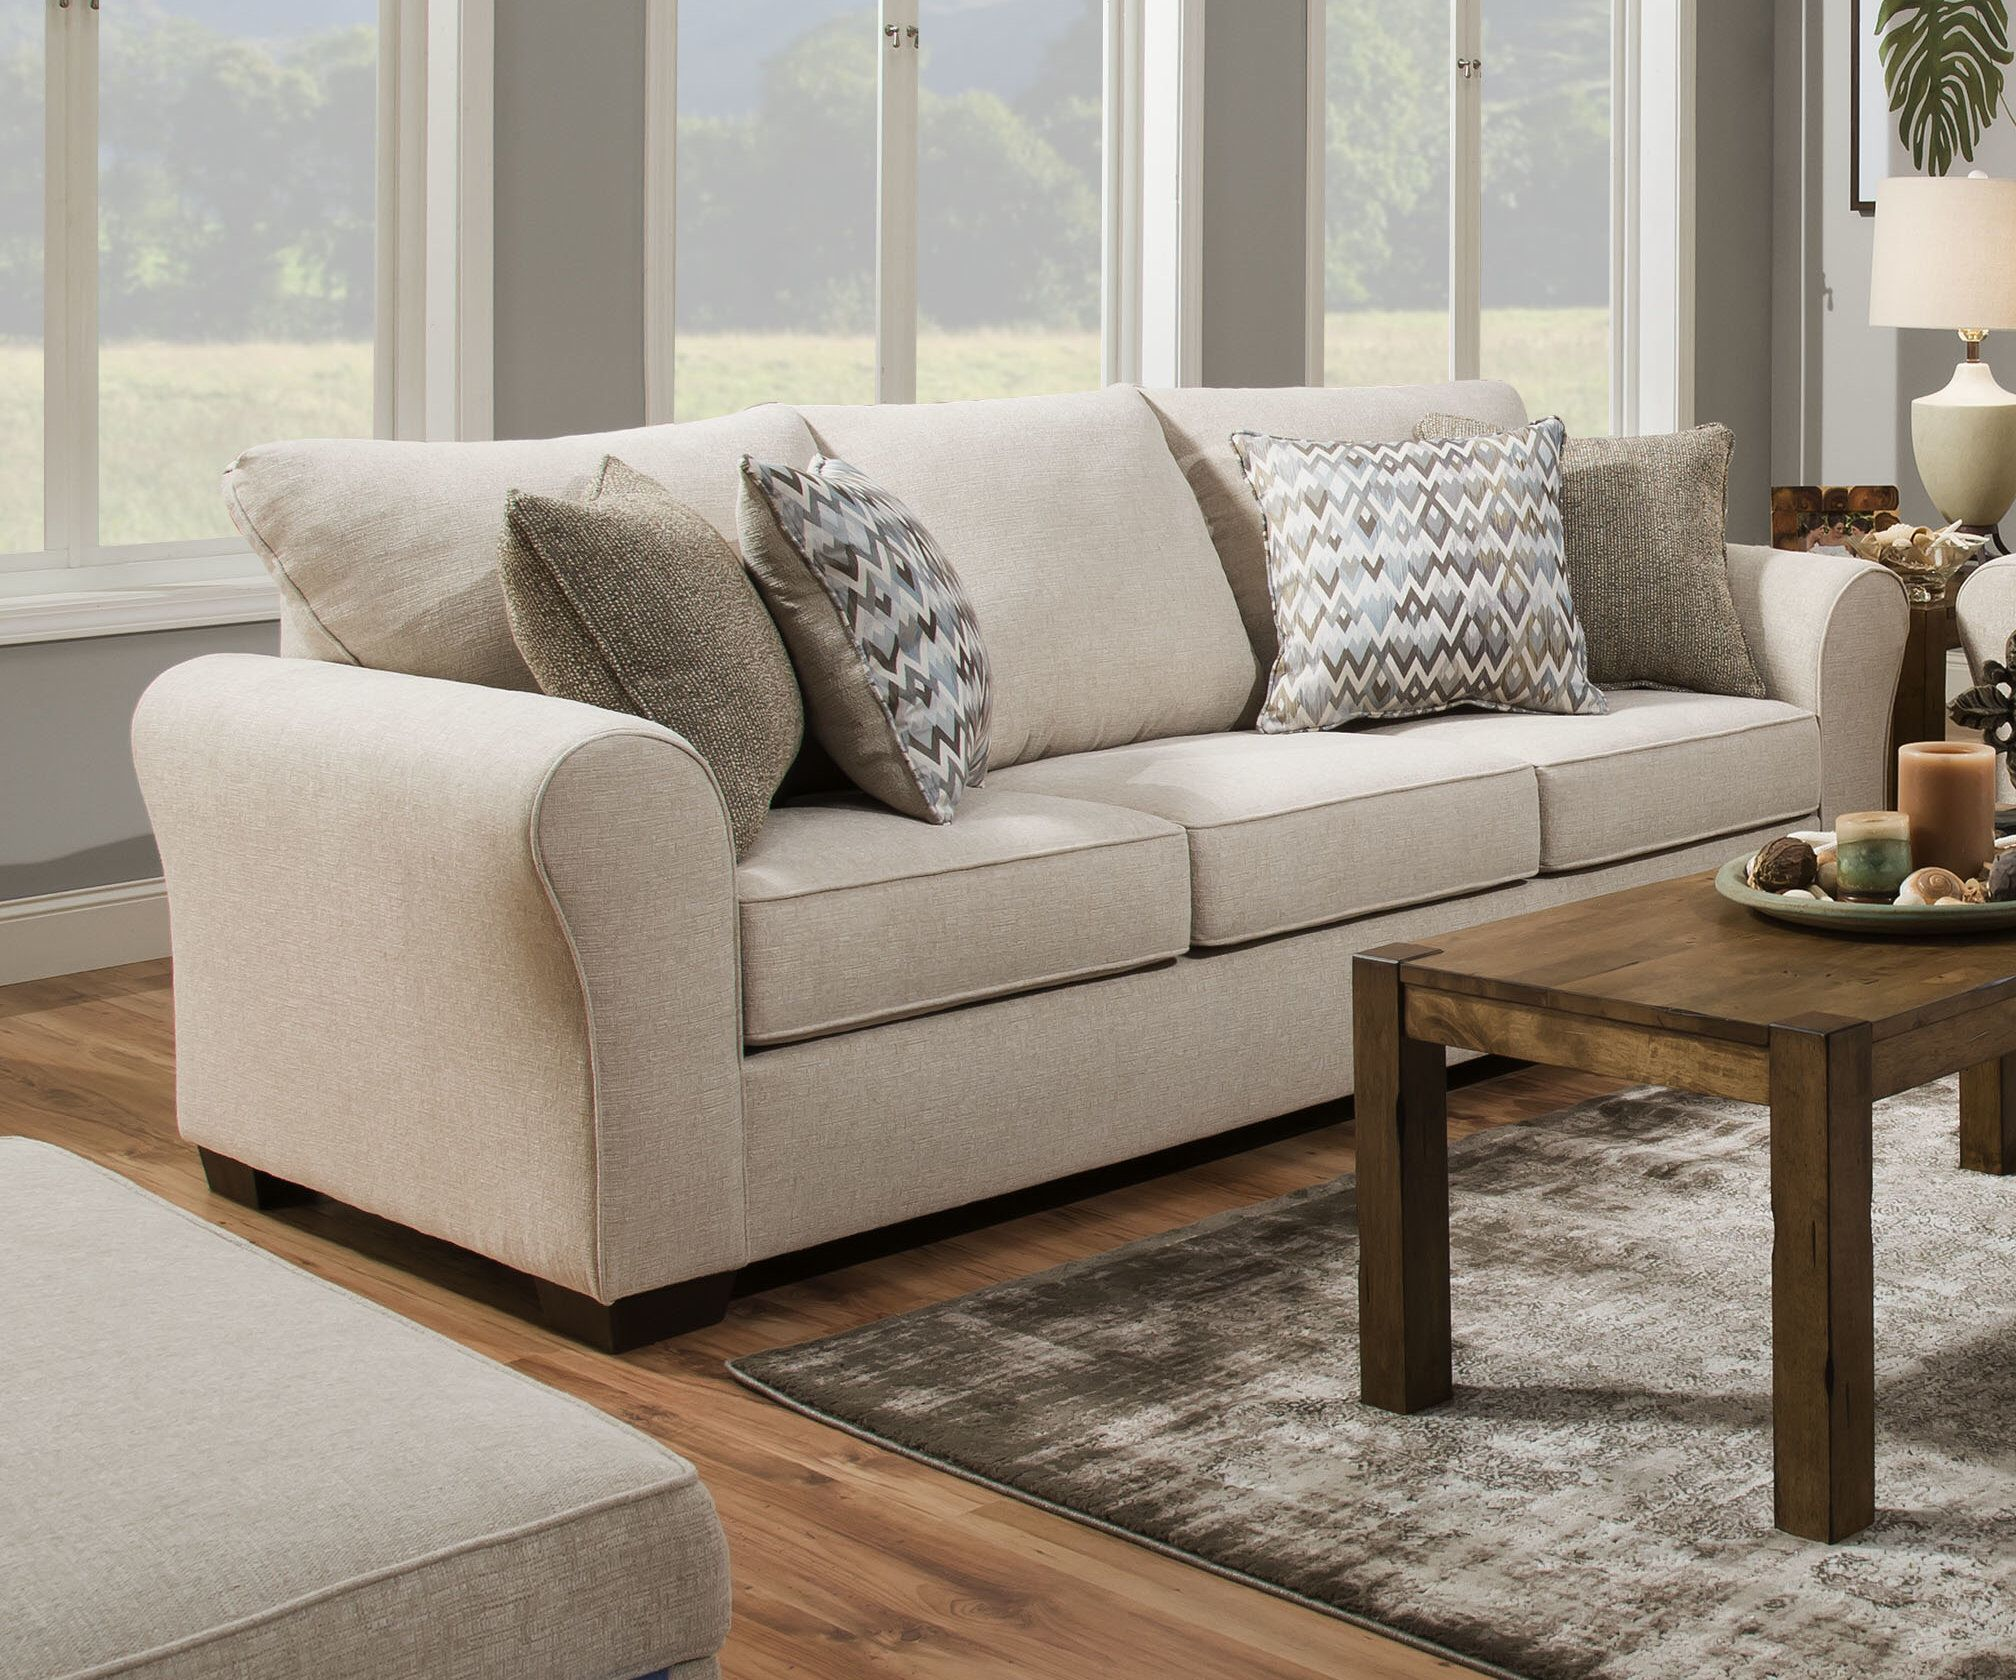 Derry Sofa Bed Sofa upholstery, Furniture, Living room sets